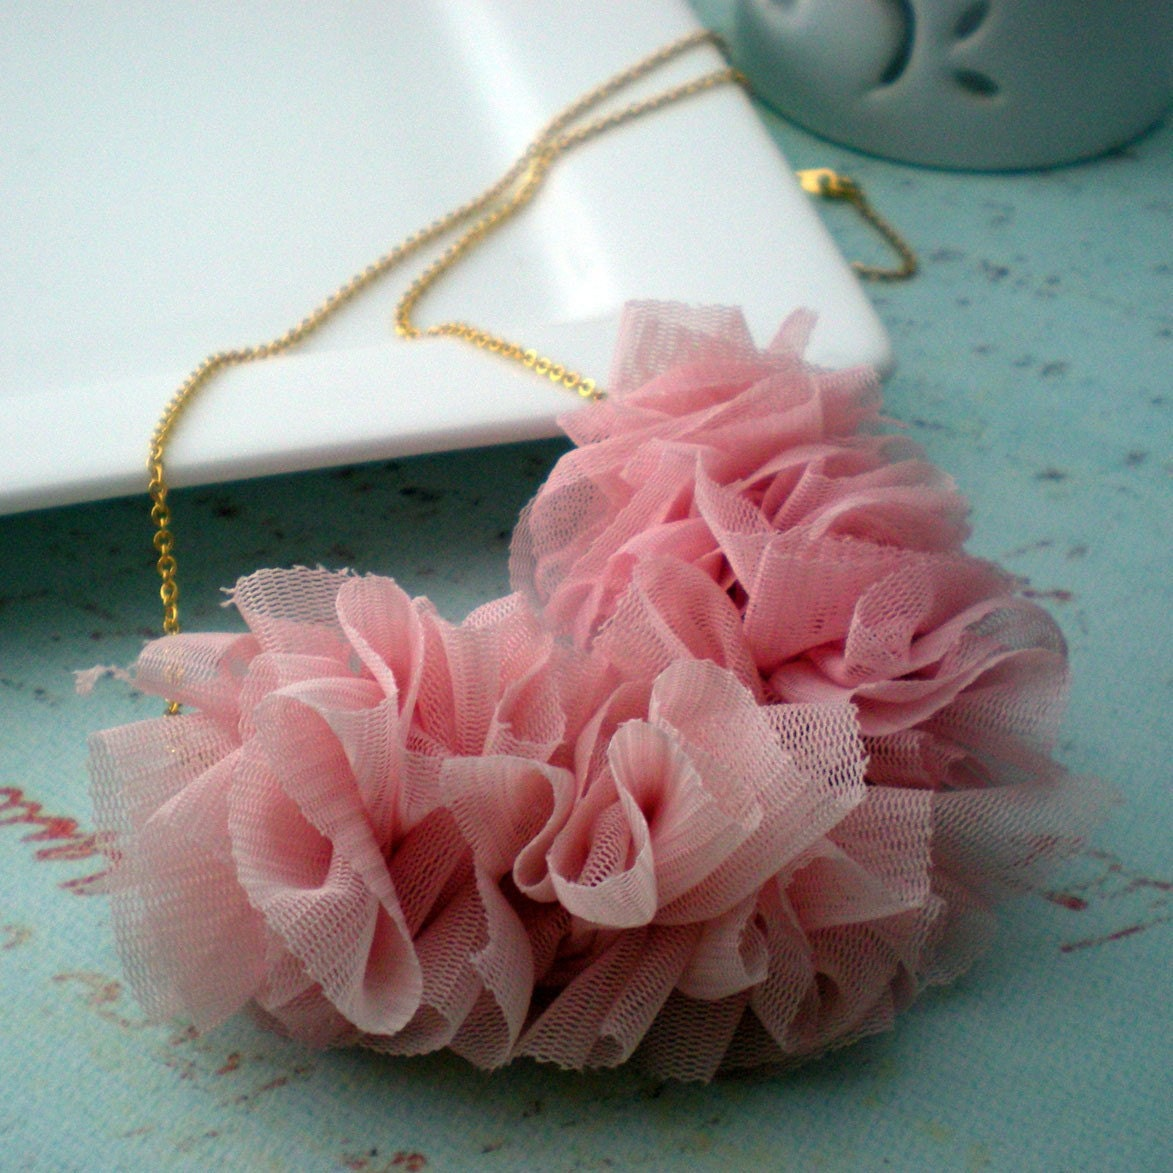 Gathered Chiffon Necklace